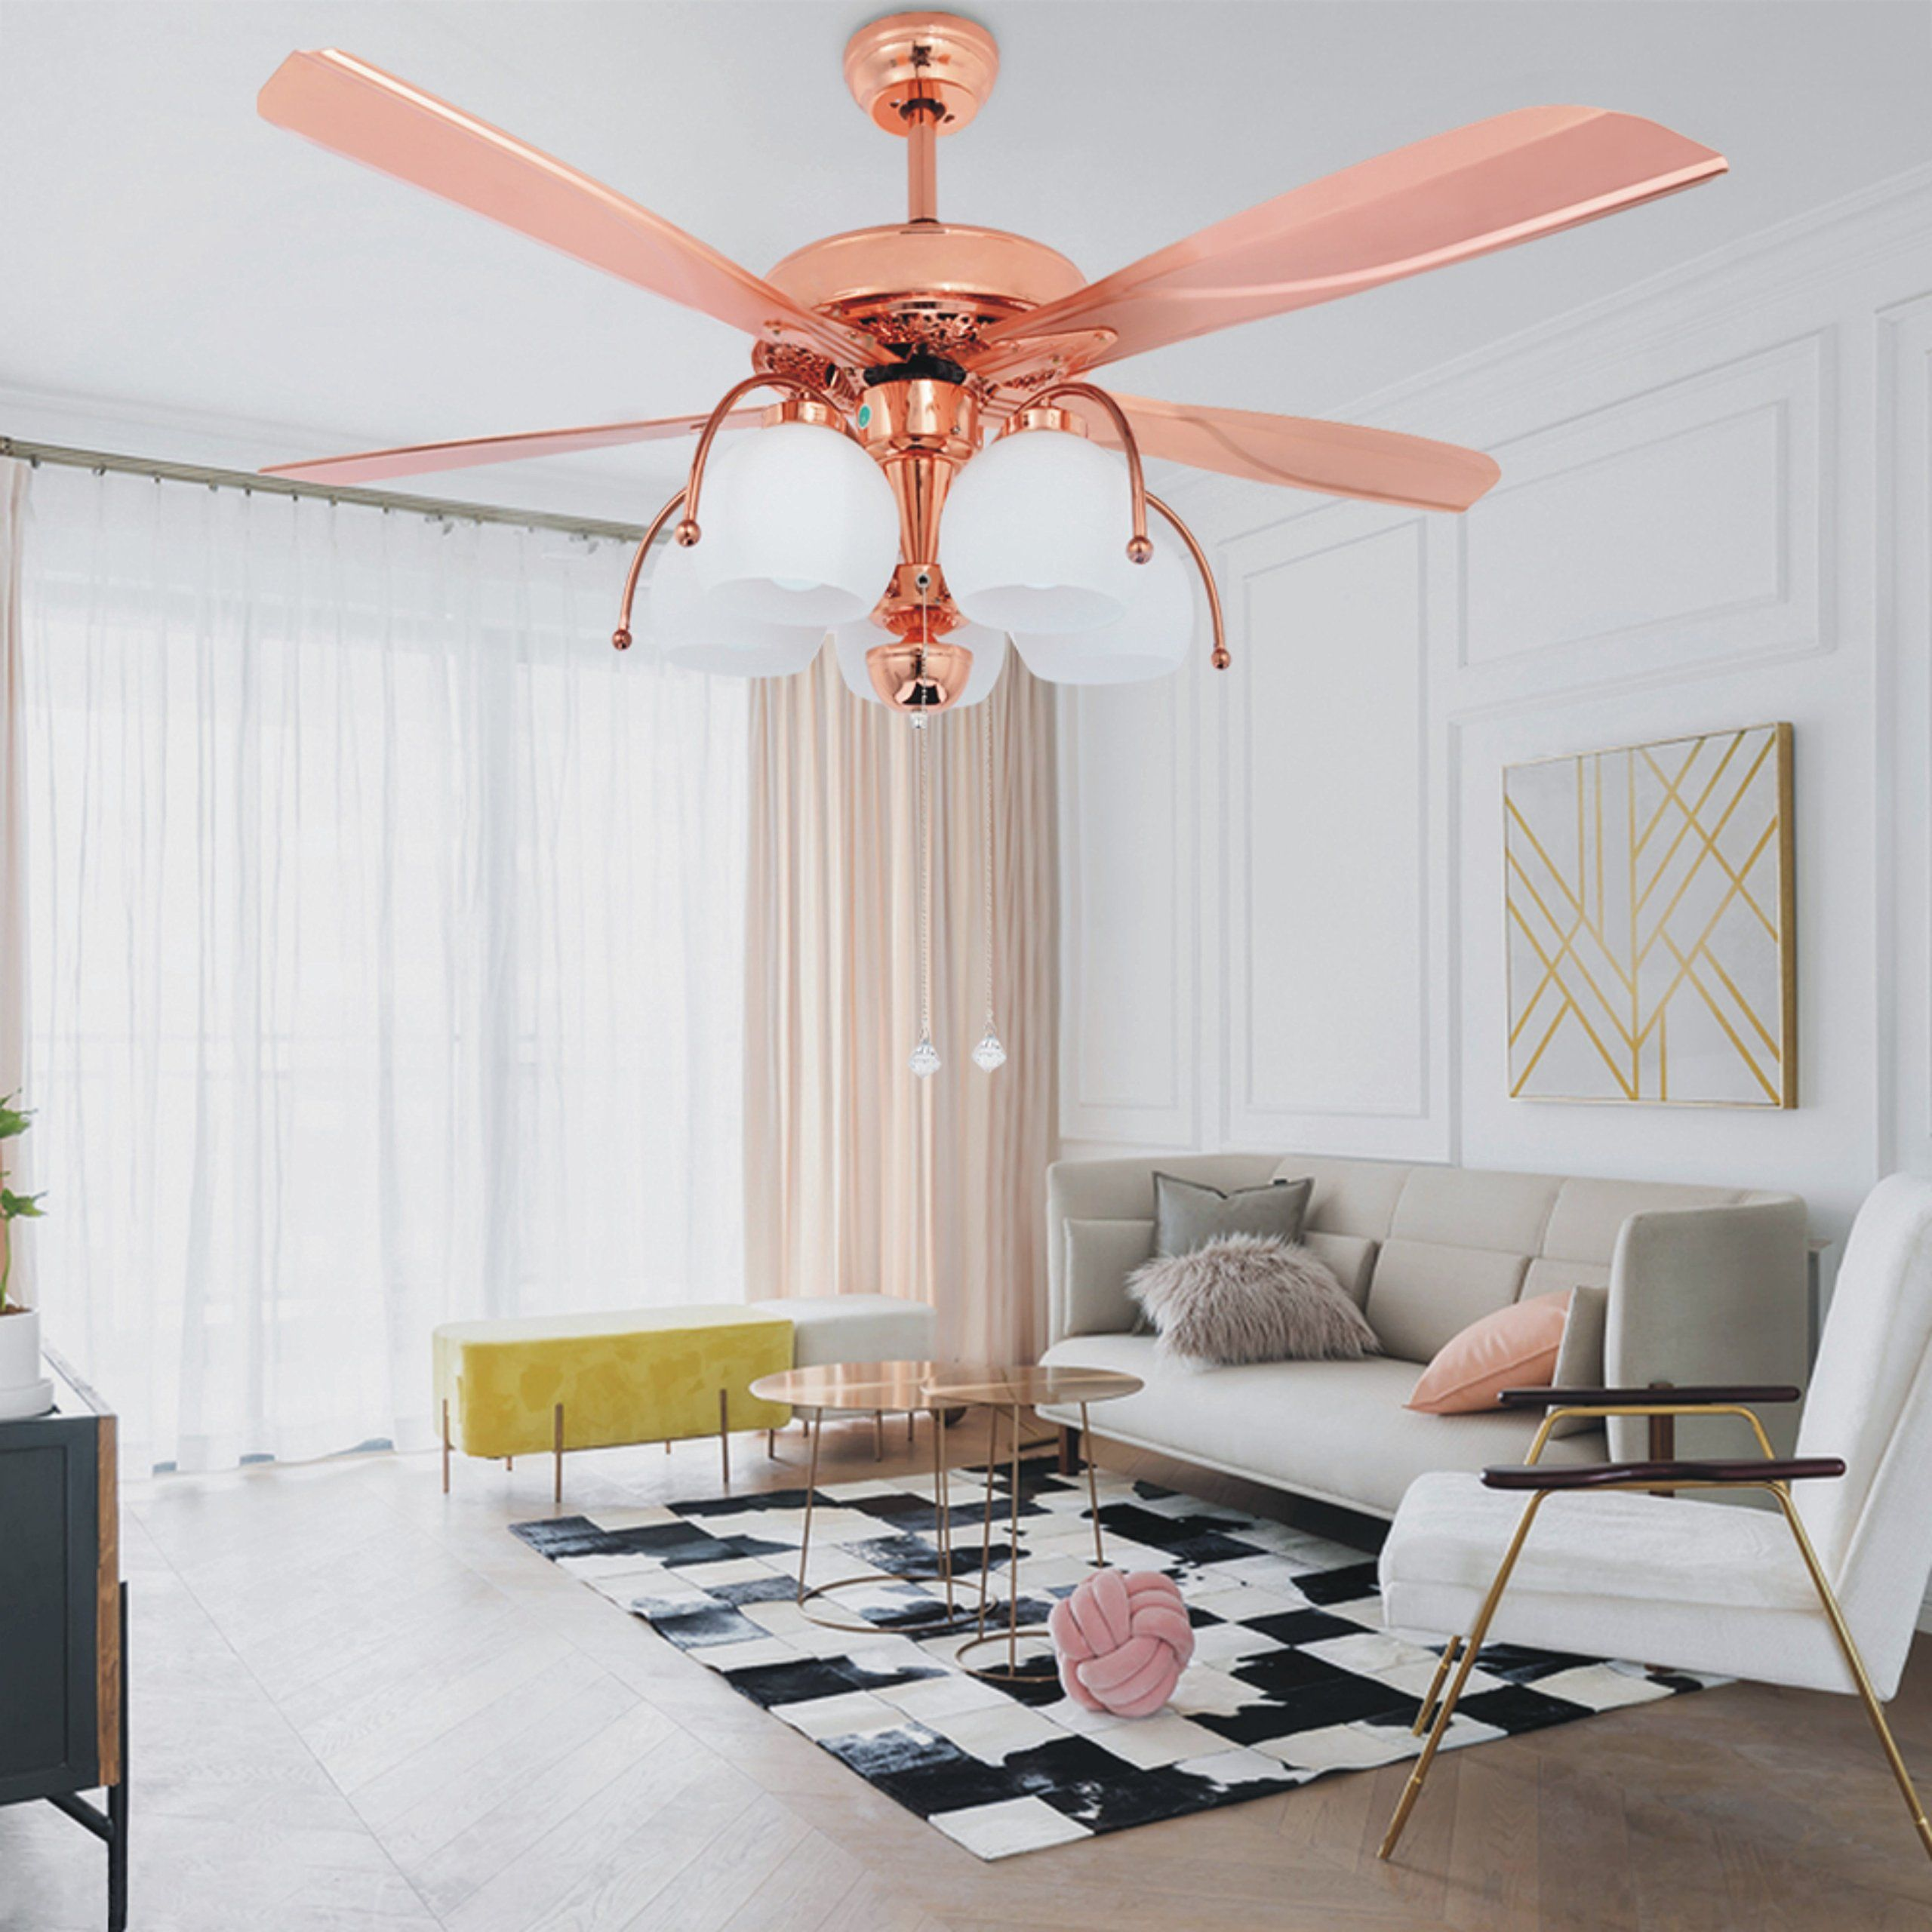 Tropicalfan 48 Inch Metal Ceiling Fan With 5 Glass Light Cover 5 Reversible Blades Home Decoration Living Room Ceiling Fan Bedroom Rose Gold Bedroom Home Decor